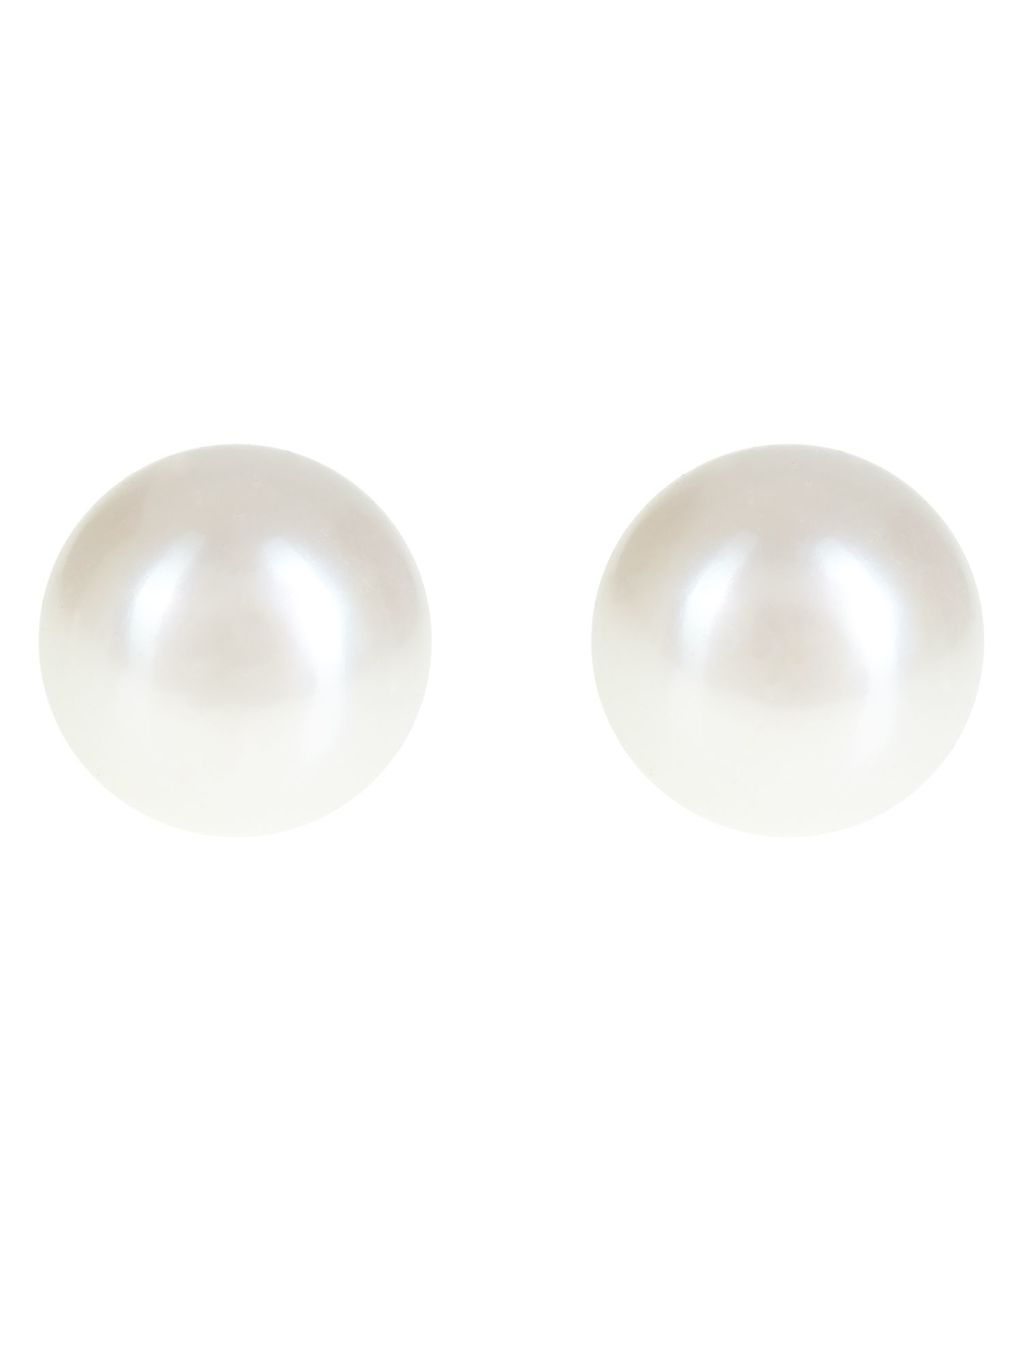 Large Pearl Stud Earrings, White - predominant colour: white; occasions: evening; style: stud; length: short; size: standard; material: plastic/rubber; fastening: pierced; finish: metallic; embellishment: sequins; season: a/w 2016; wardrobe: event